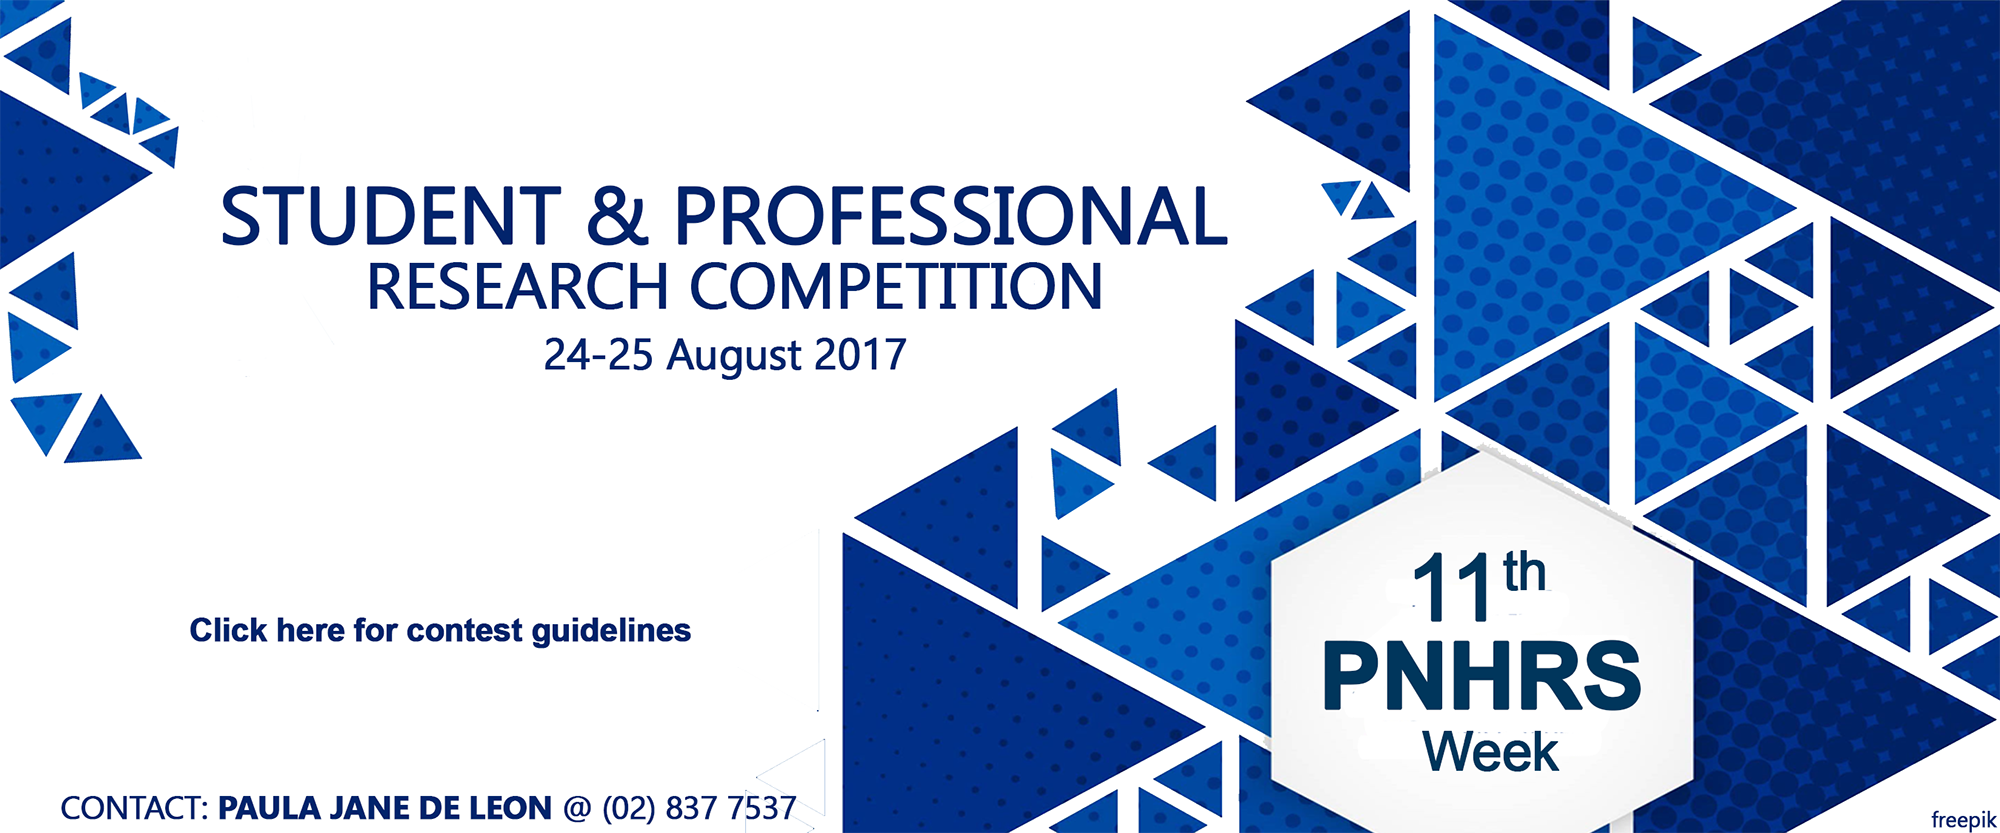 Student and Professional Research Competition